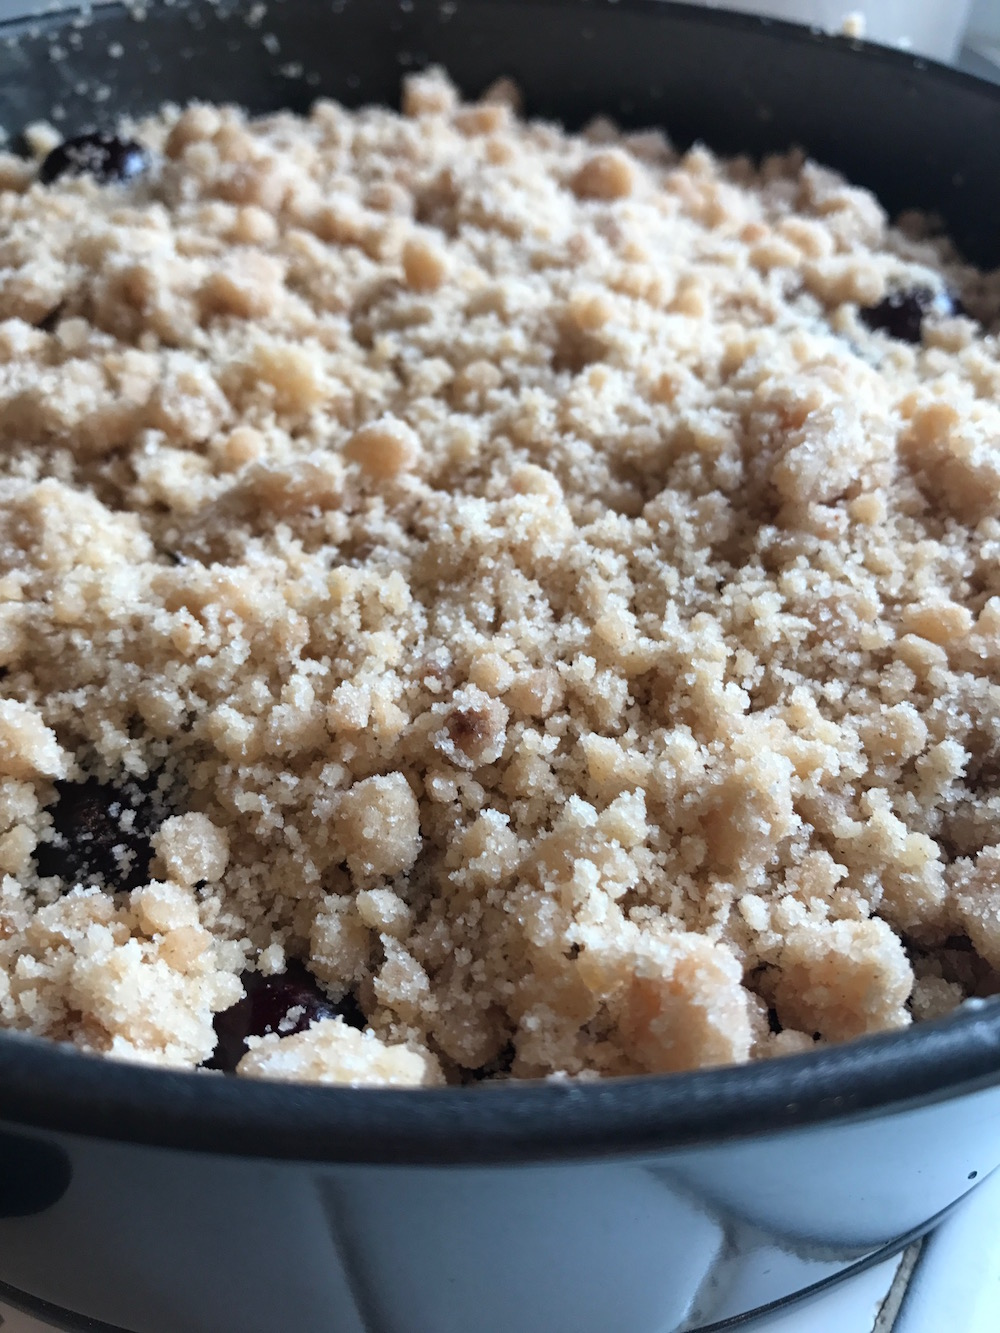 Crumb topping on Almond Cherry Crumb Cake